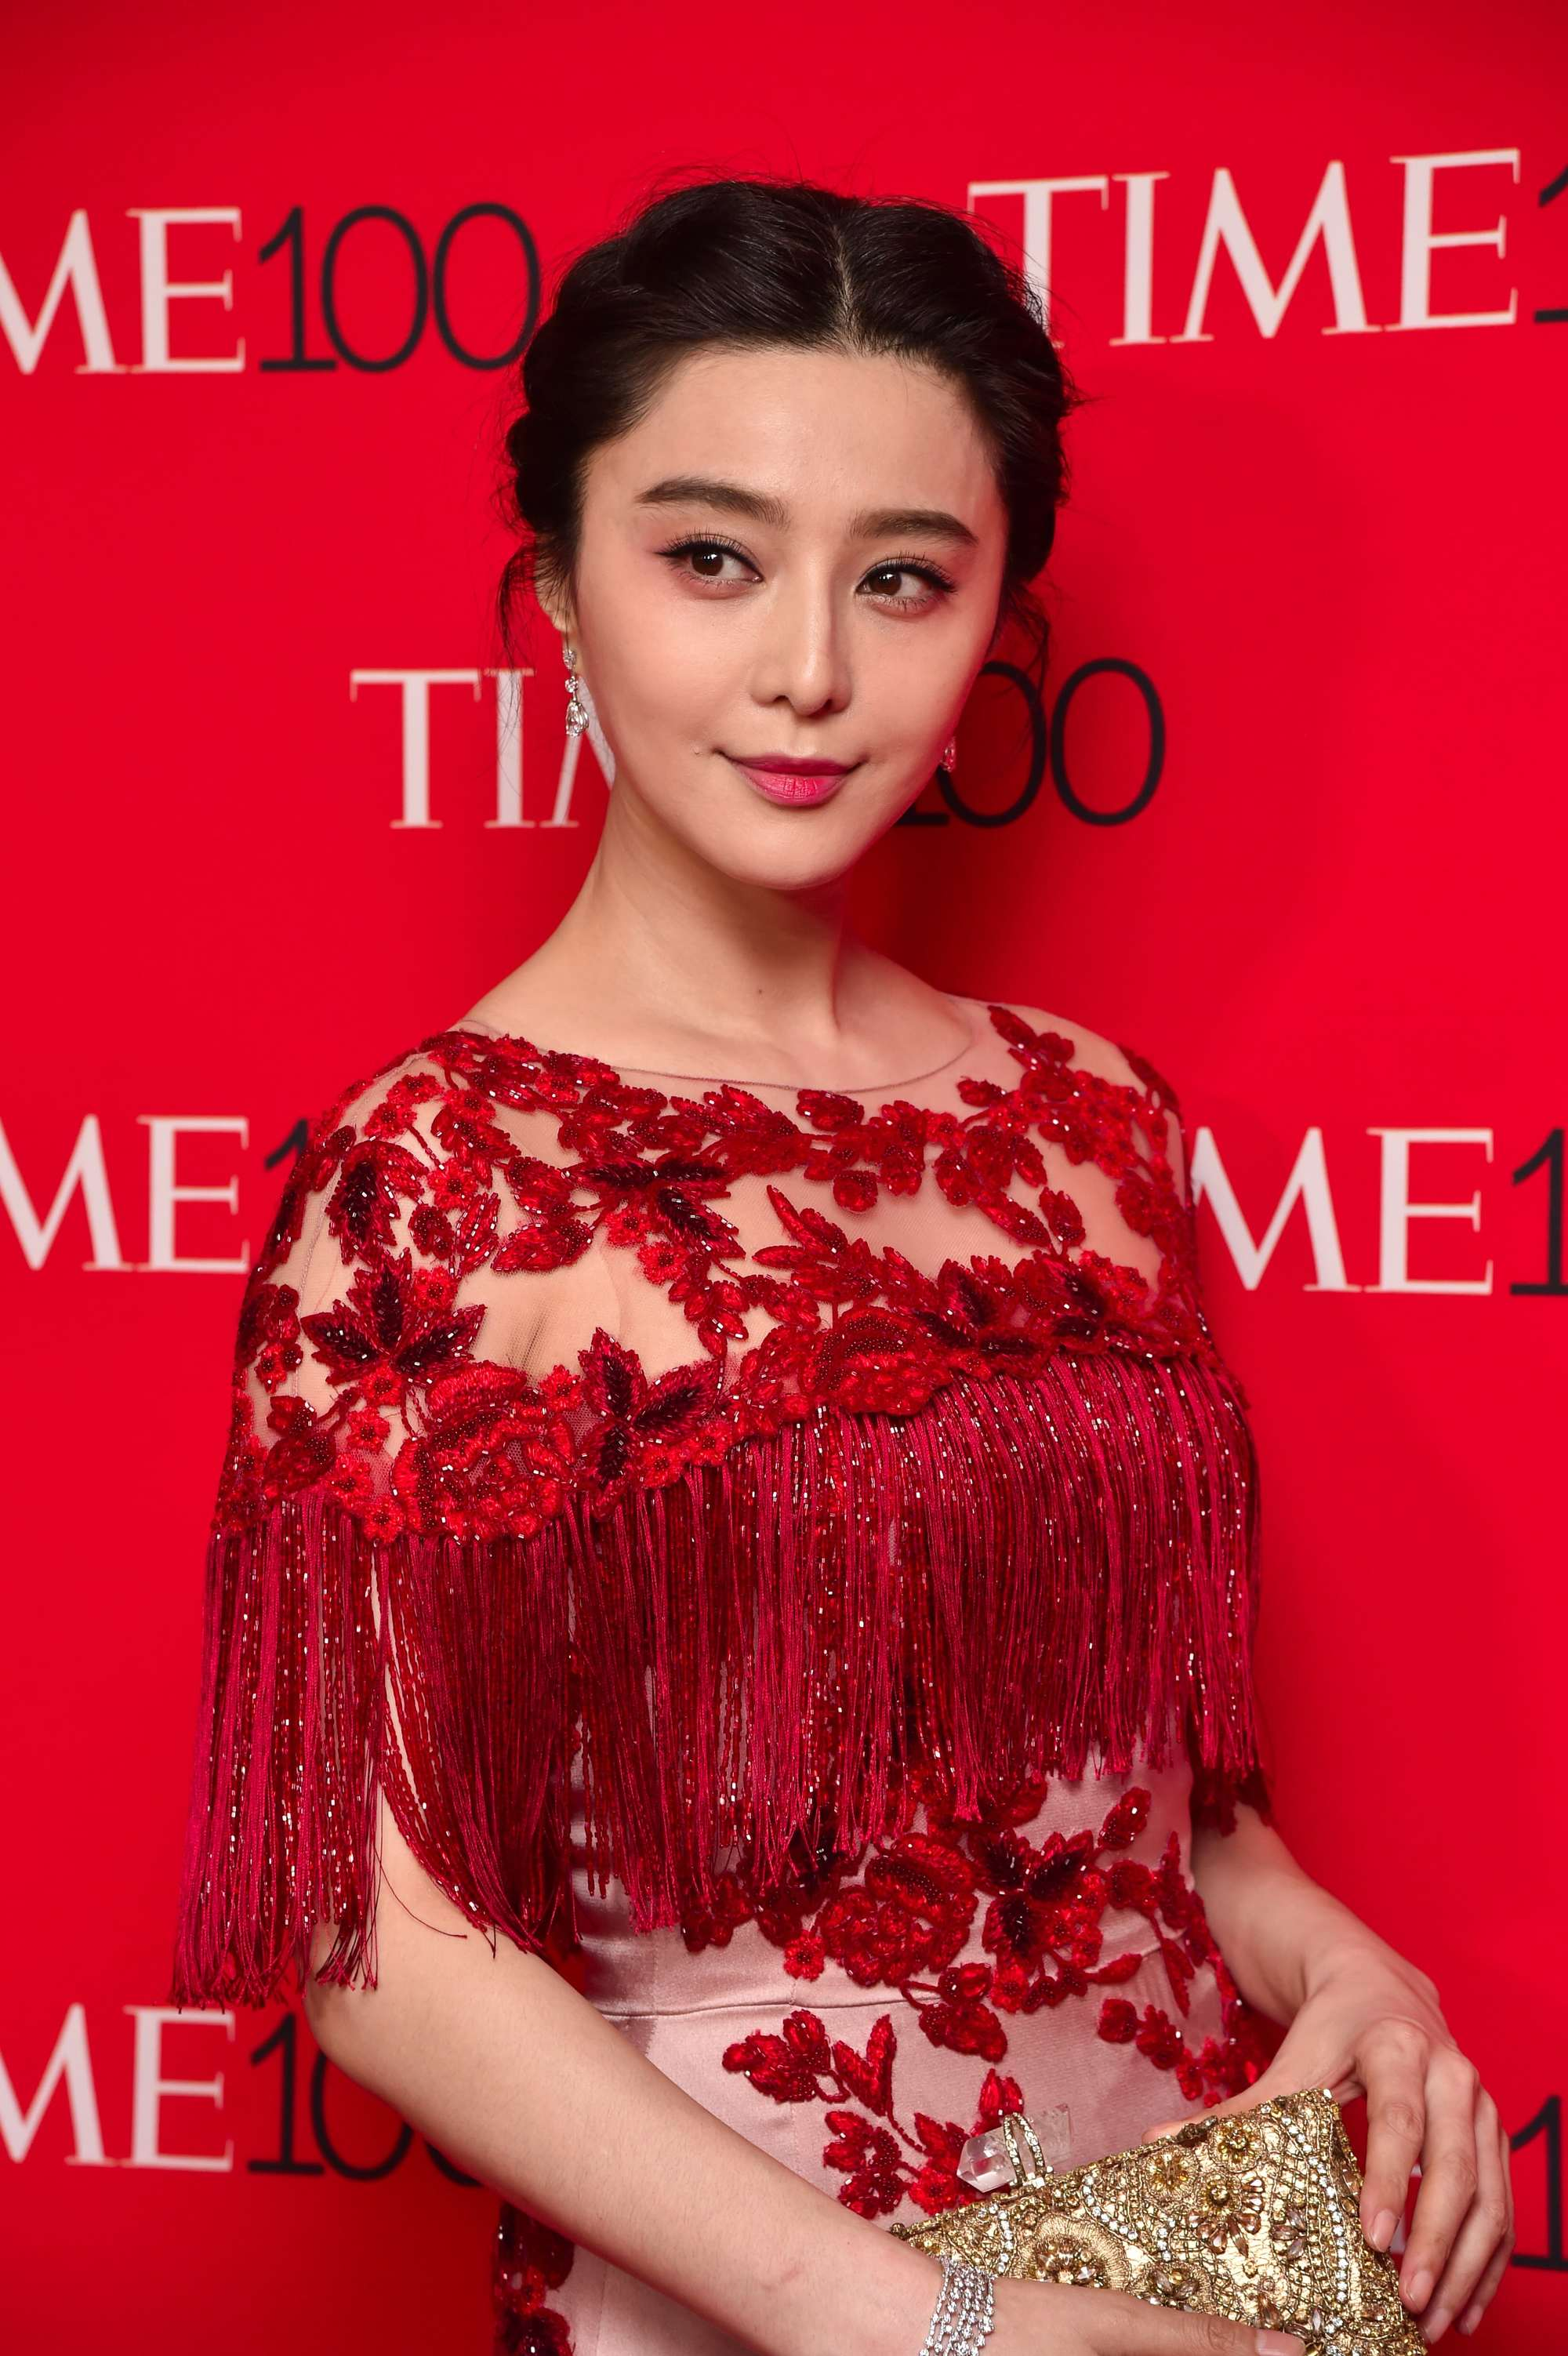 fan bing bing with twisted updo and red dress at time gala event